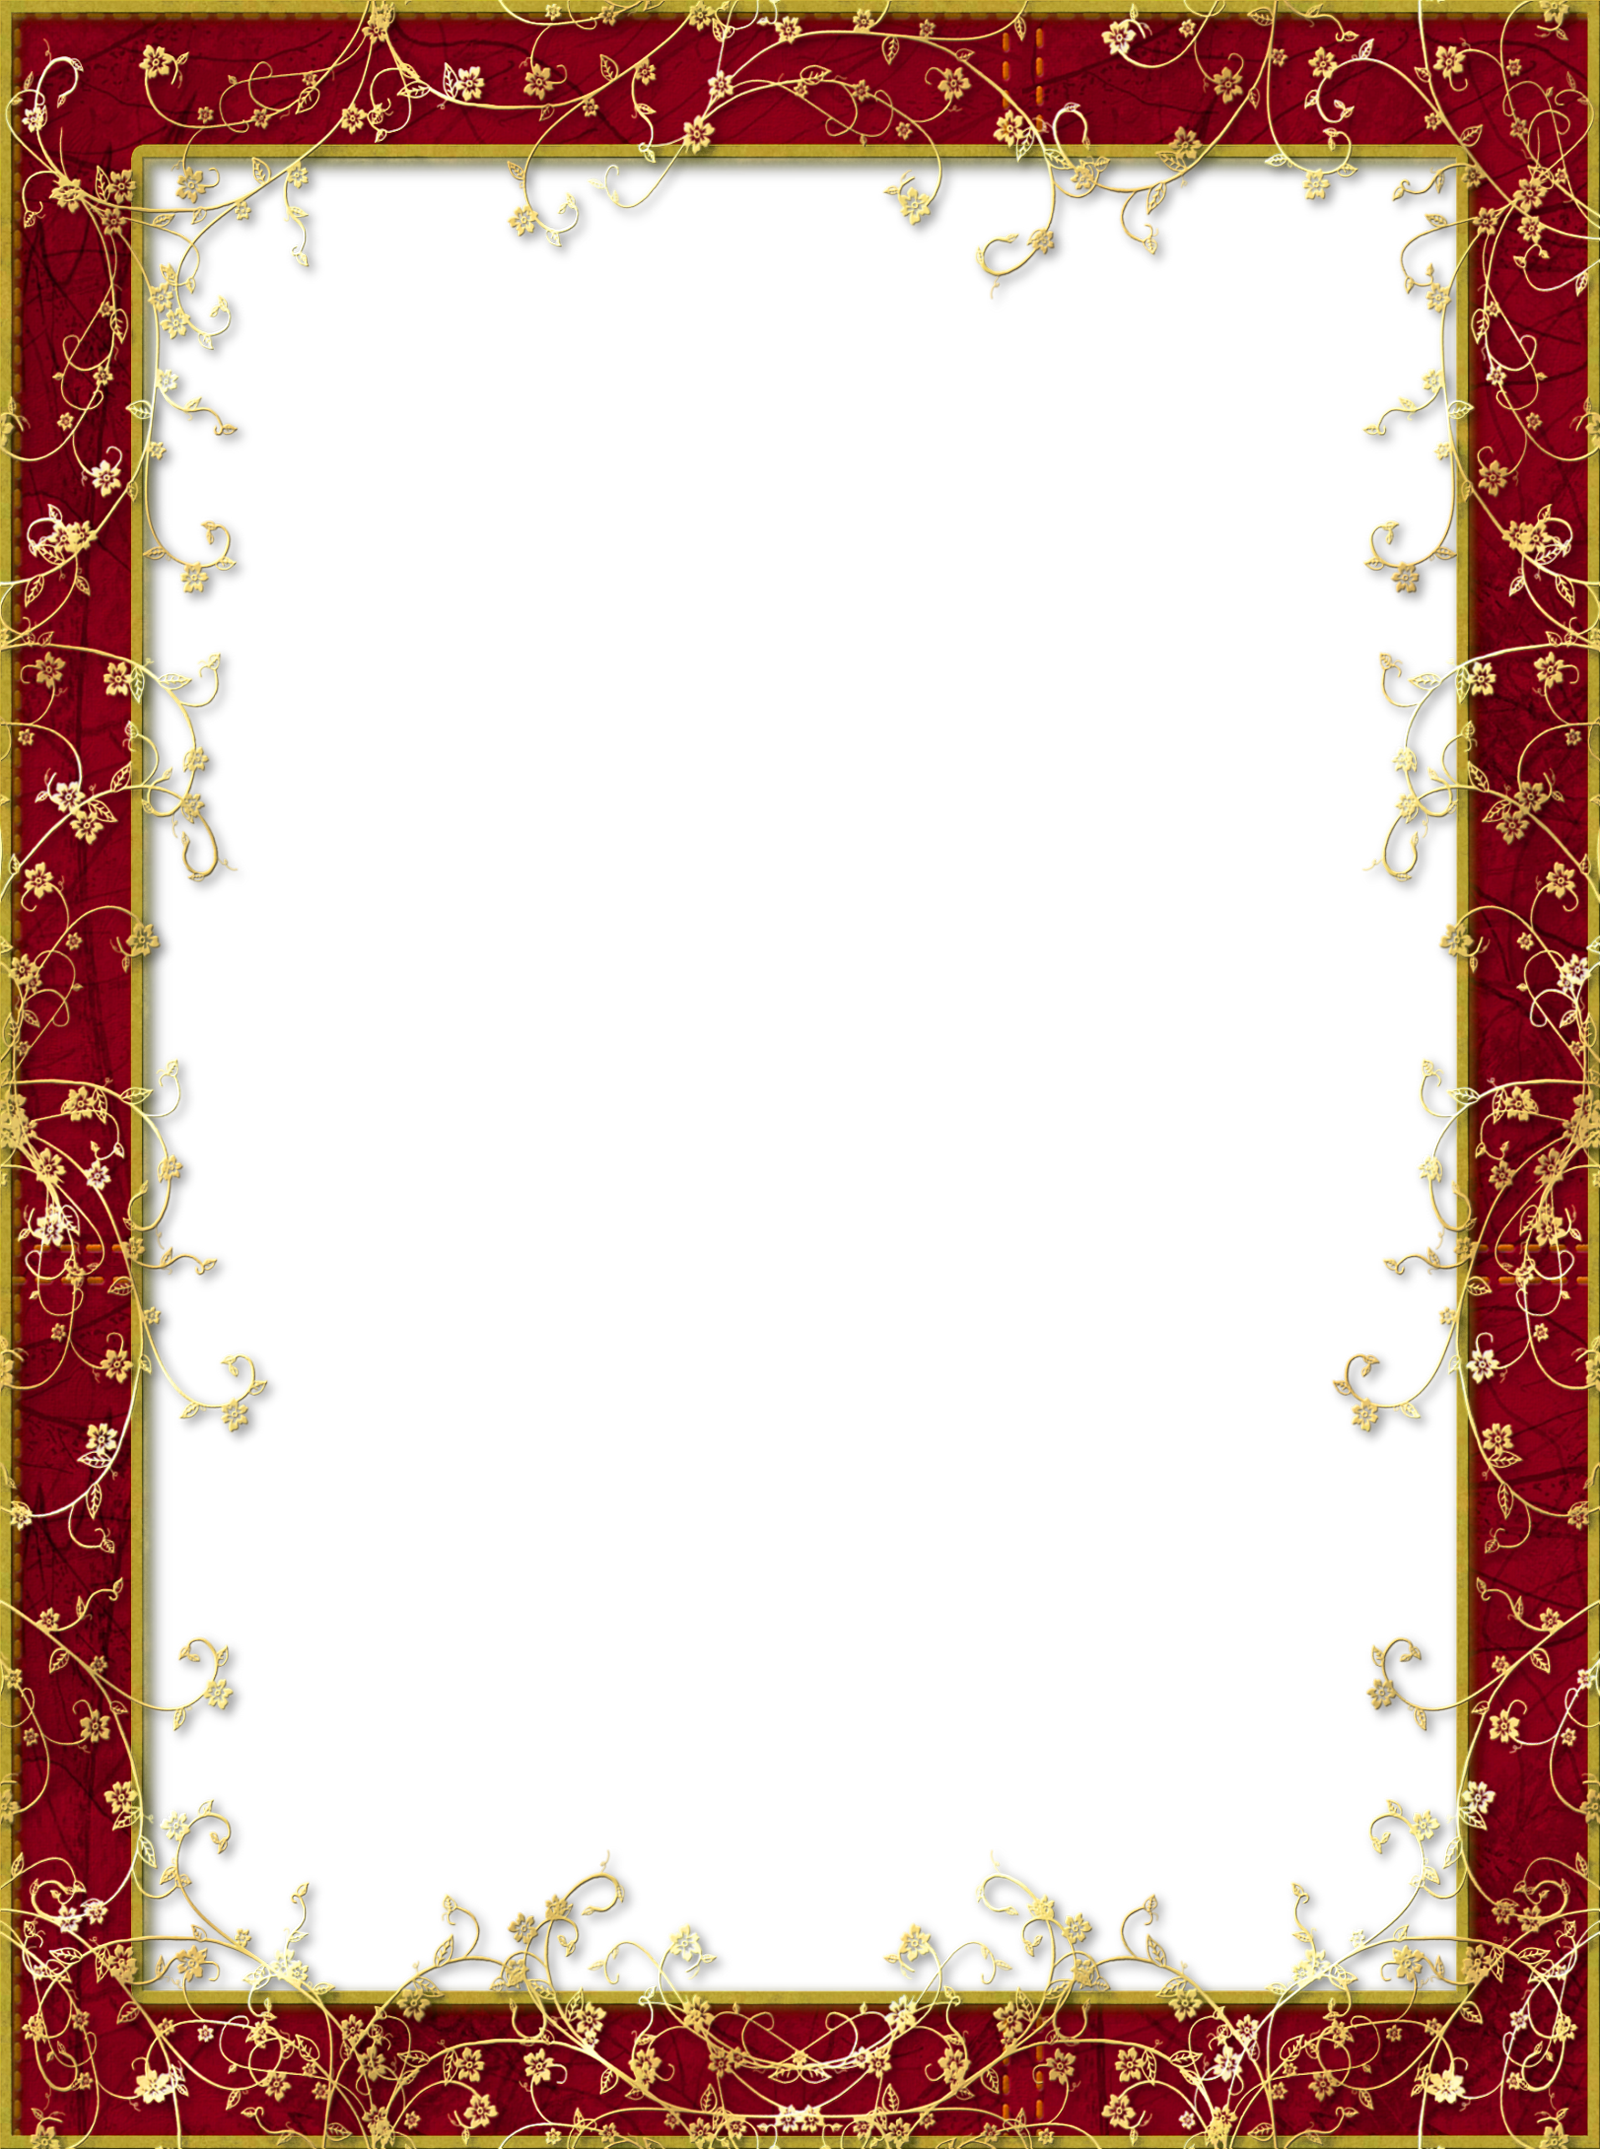 Frame clipart gold glitter. Red transparent png with